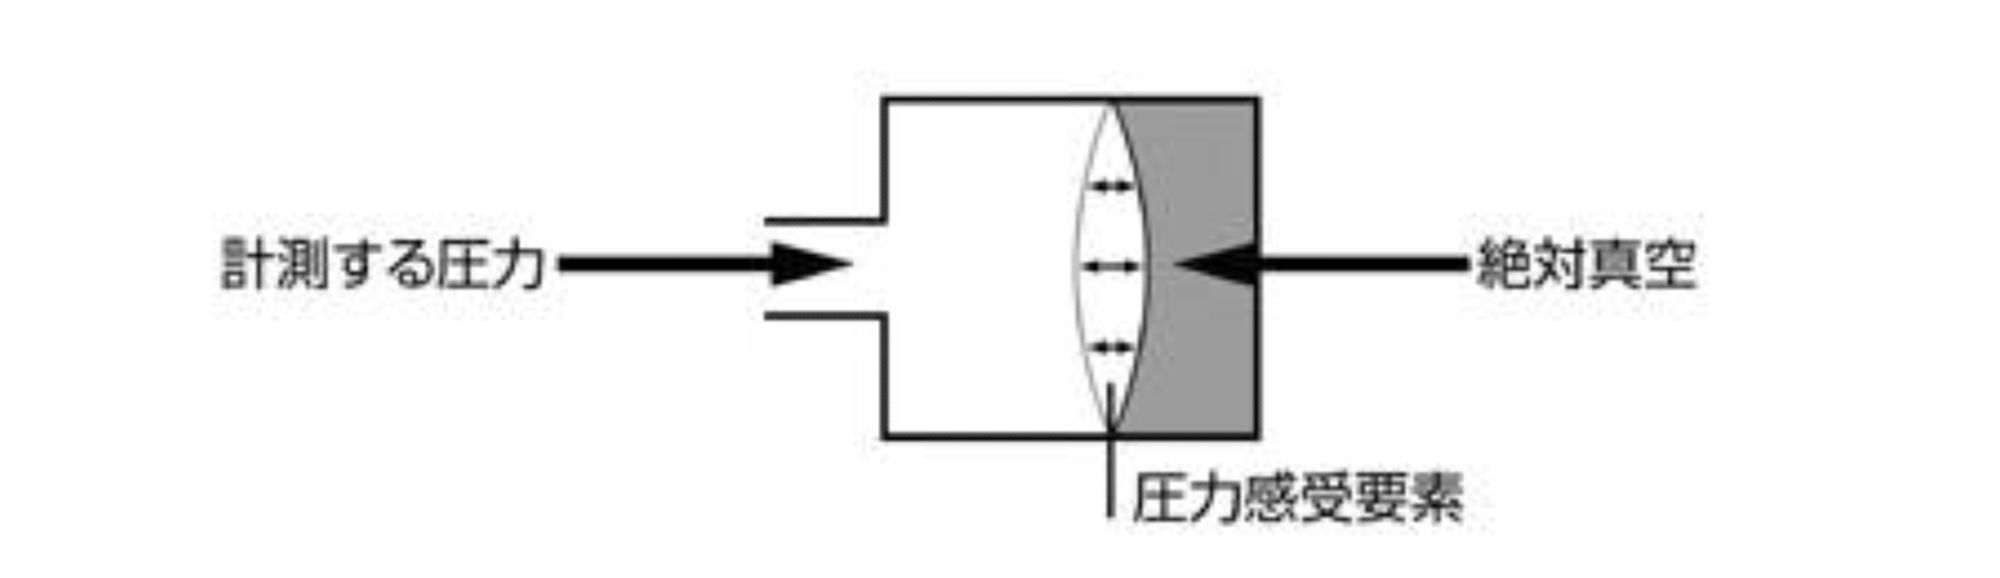 jp_differential_pressure_FAQ_1.jpg